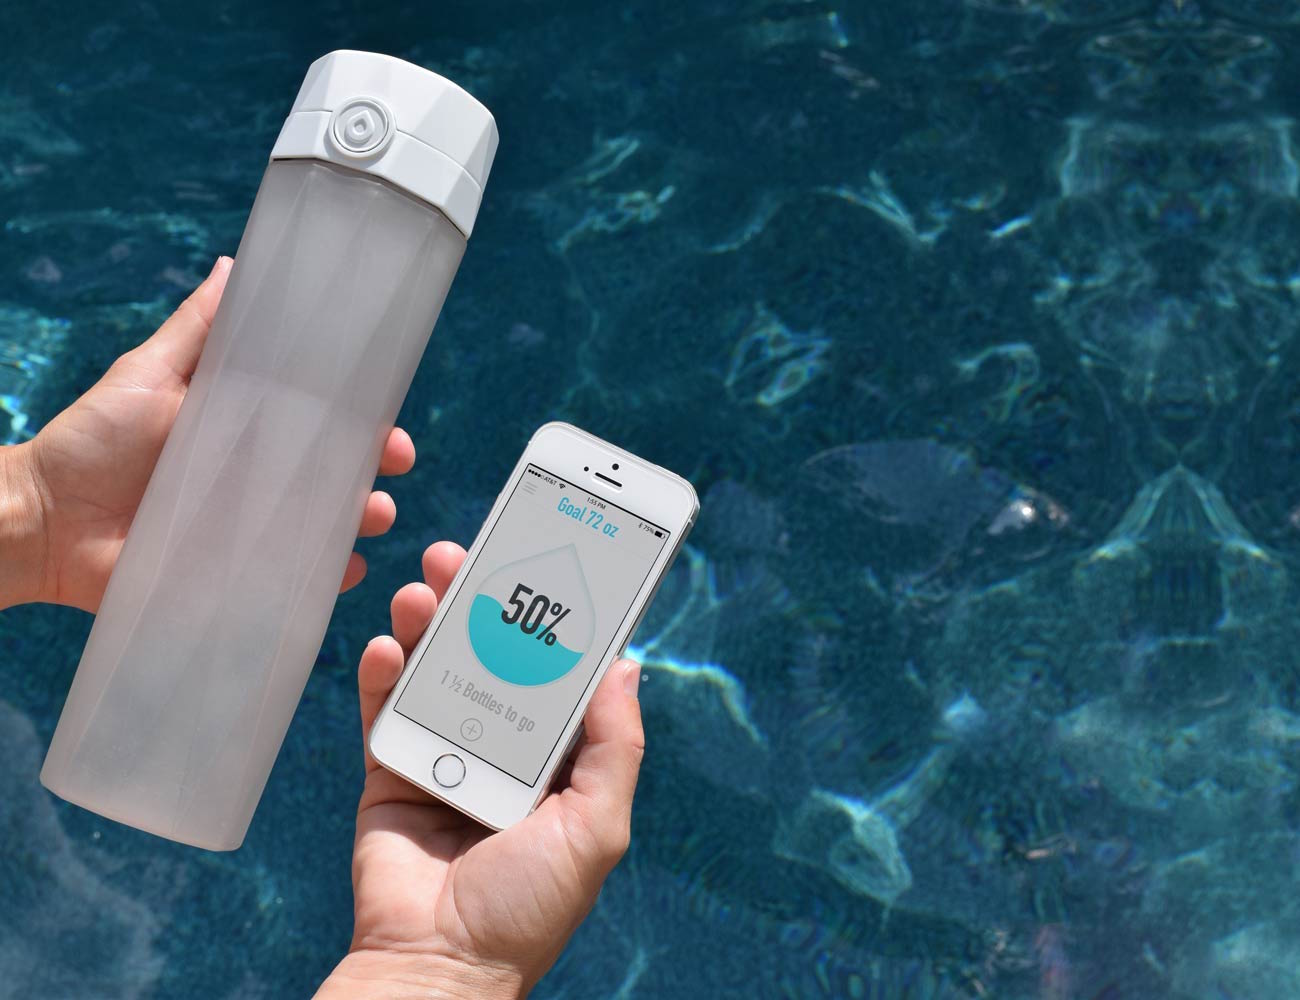 hidratespark-smart-water-bottle-05